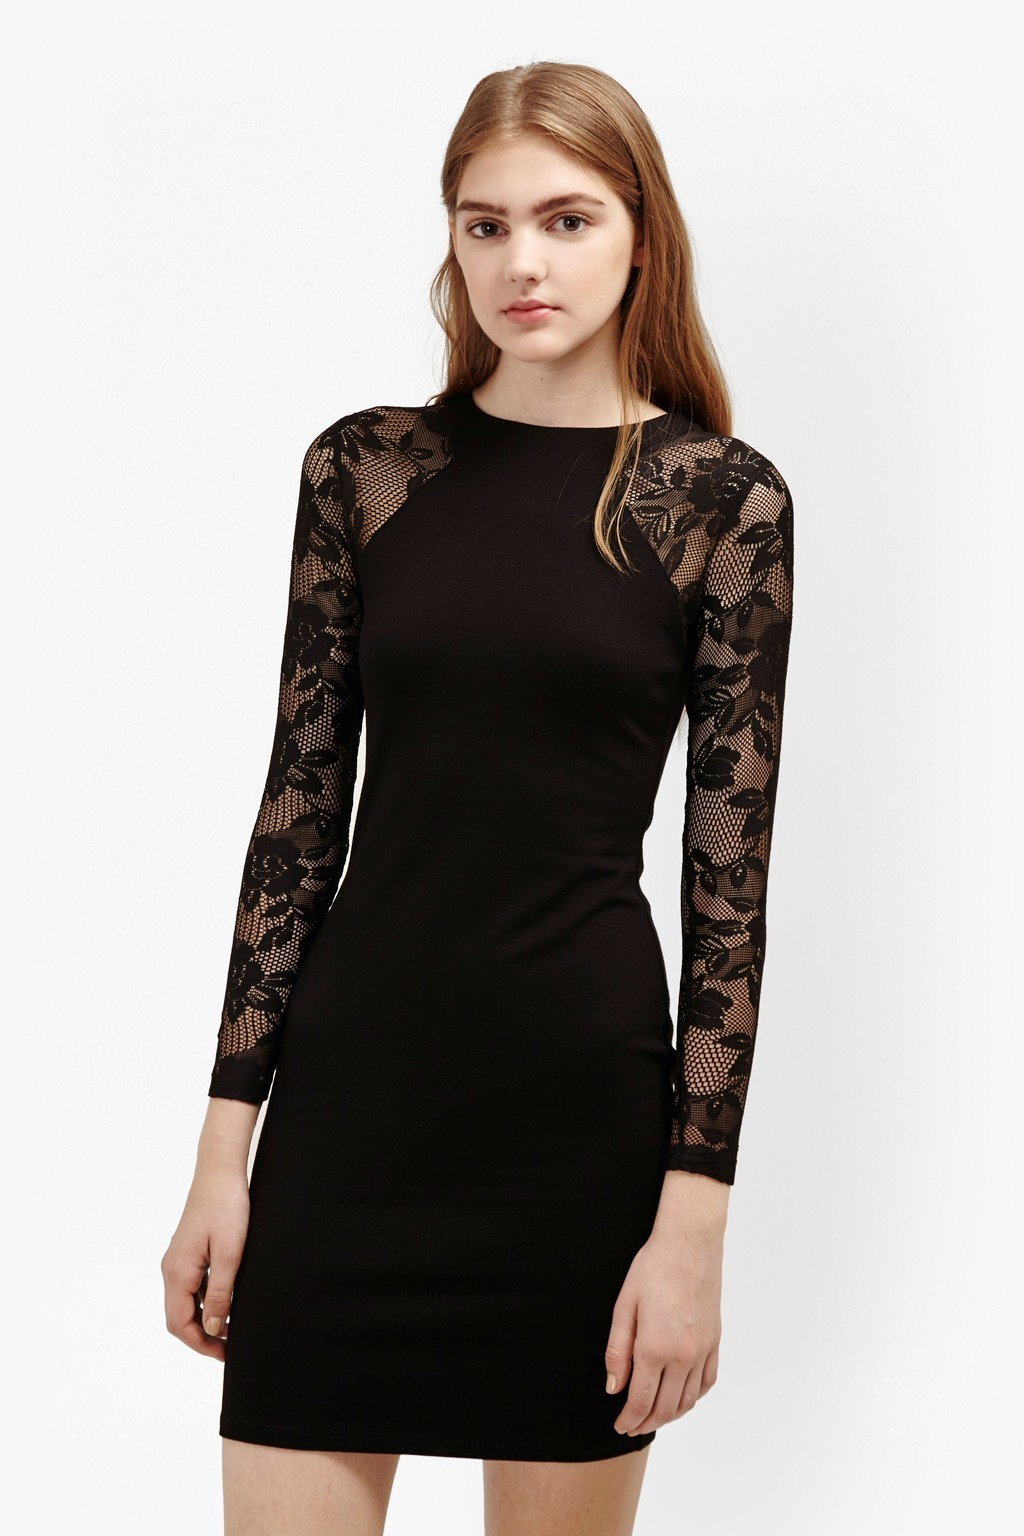 Tatlin Beau Jersey Lace Dress Black - length: mid thigh; fit: tight; style: bodycon; hip detail: fitted at hip; predominant colour: black; occasions: evening; fibres: polyester/polyamide - stretch; neckline: crew; sleeve length: long sleeve; sleeve style: standard; texture group: lace; pattern type: fabric; pattern size: standard; pattern: florals; shoulder detail: sheer at shoulder; season: a/w 2016; wardrobe: event